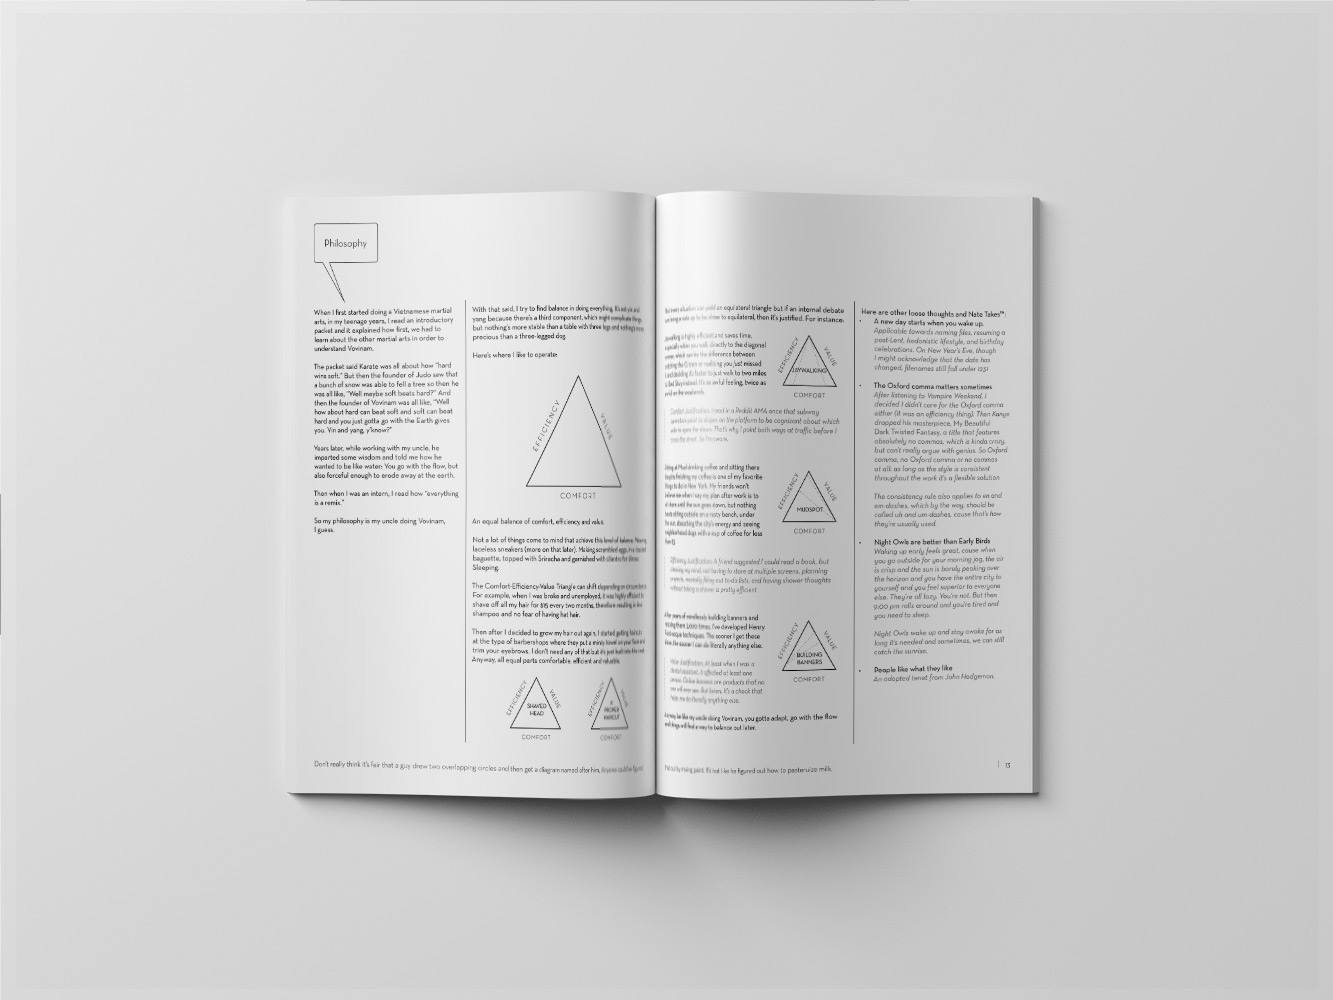 Nathan-Hoang_Style-Guide_mock-up_pages_180715_v3.3_7.jpg